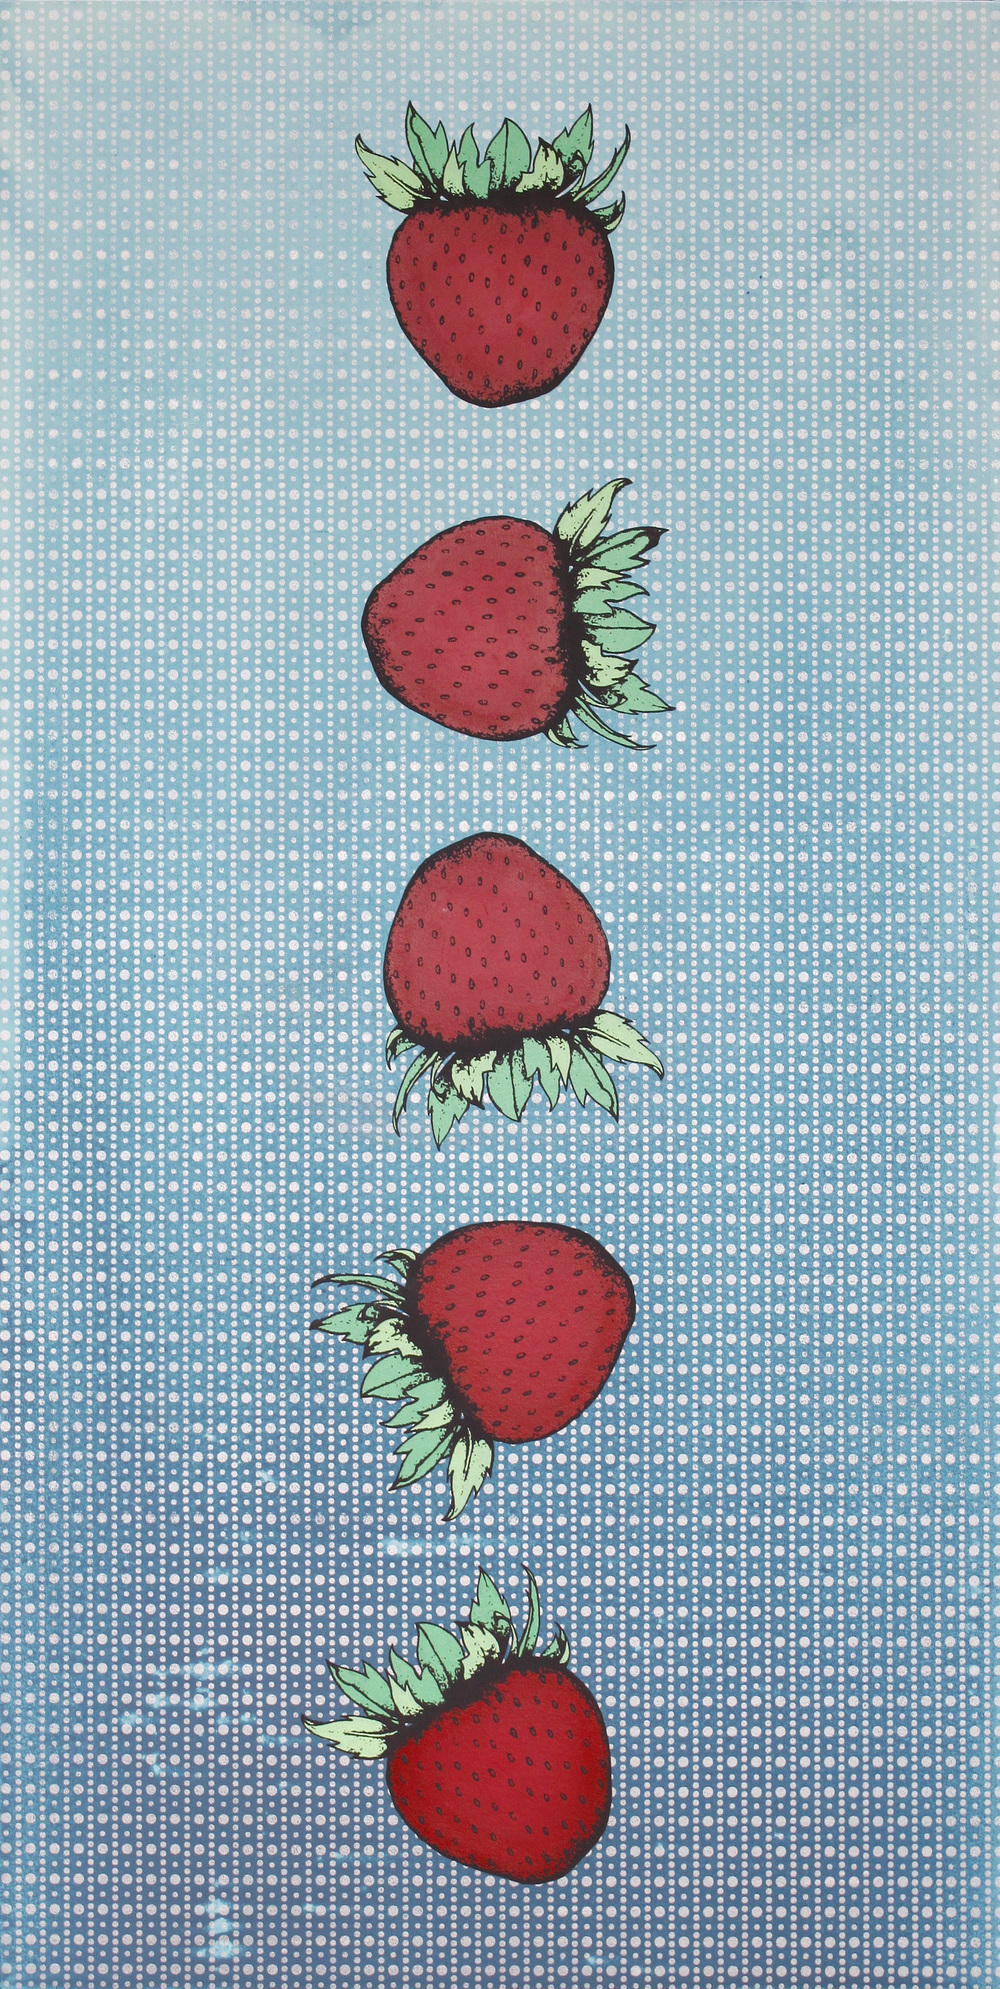 The Perfect Strawberry.2016.Acrylic on canvas mounted on board.48 x 24 inches.